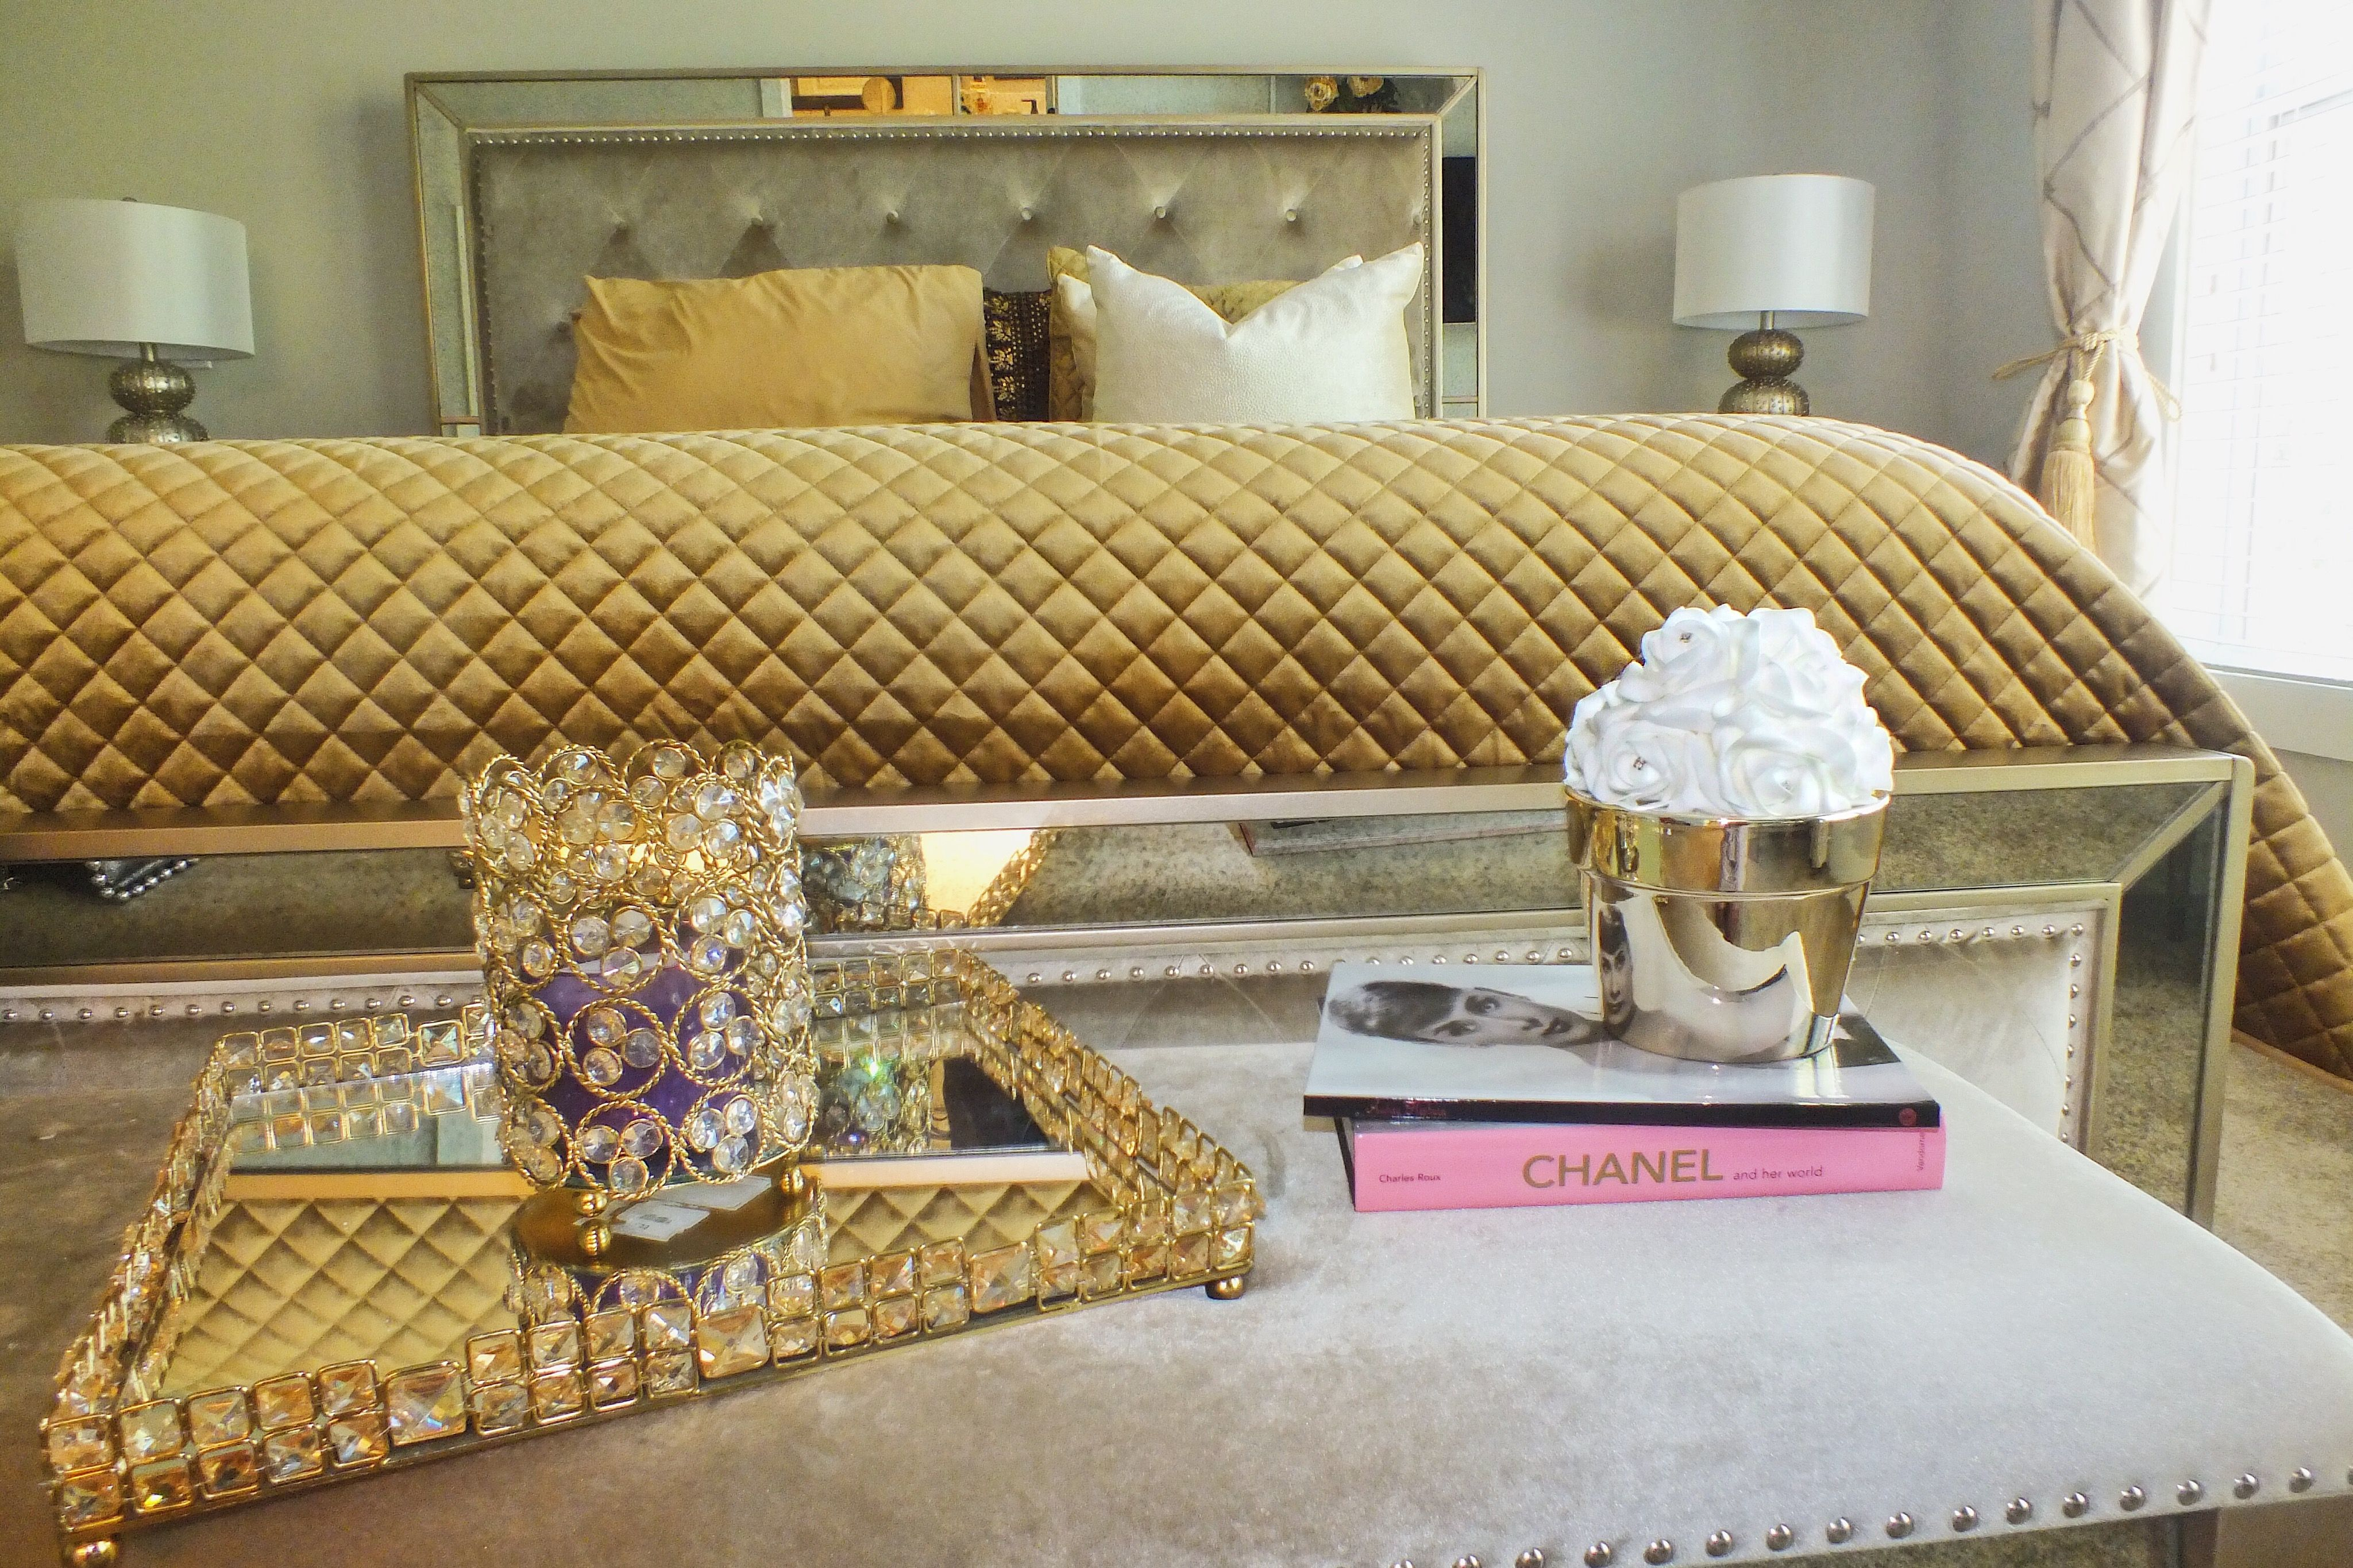 Glam gold and white bedroom decor with Z gallerie and Home